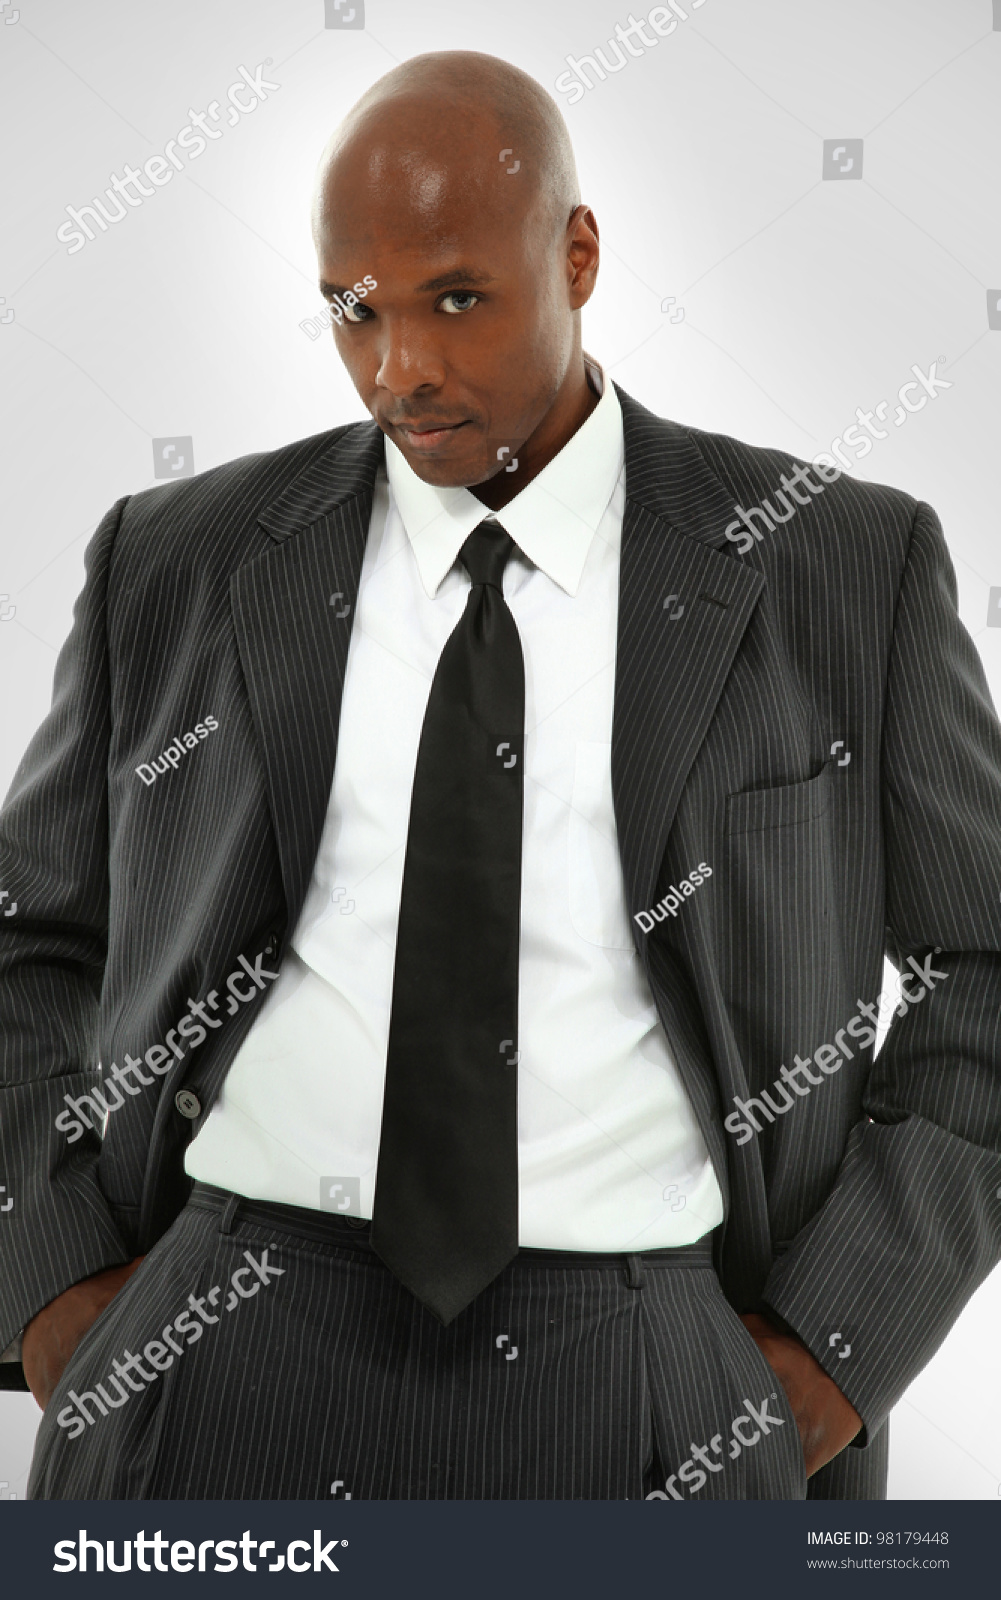 Attractive Black Male Model Suit Looking Stock Photo 98179448 ...